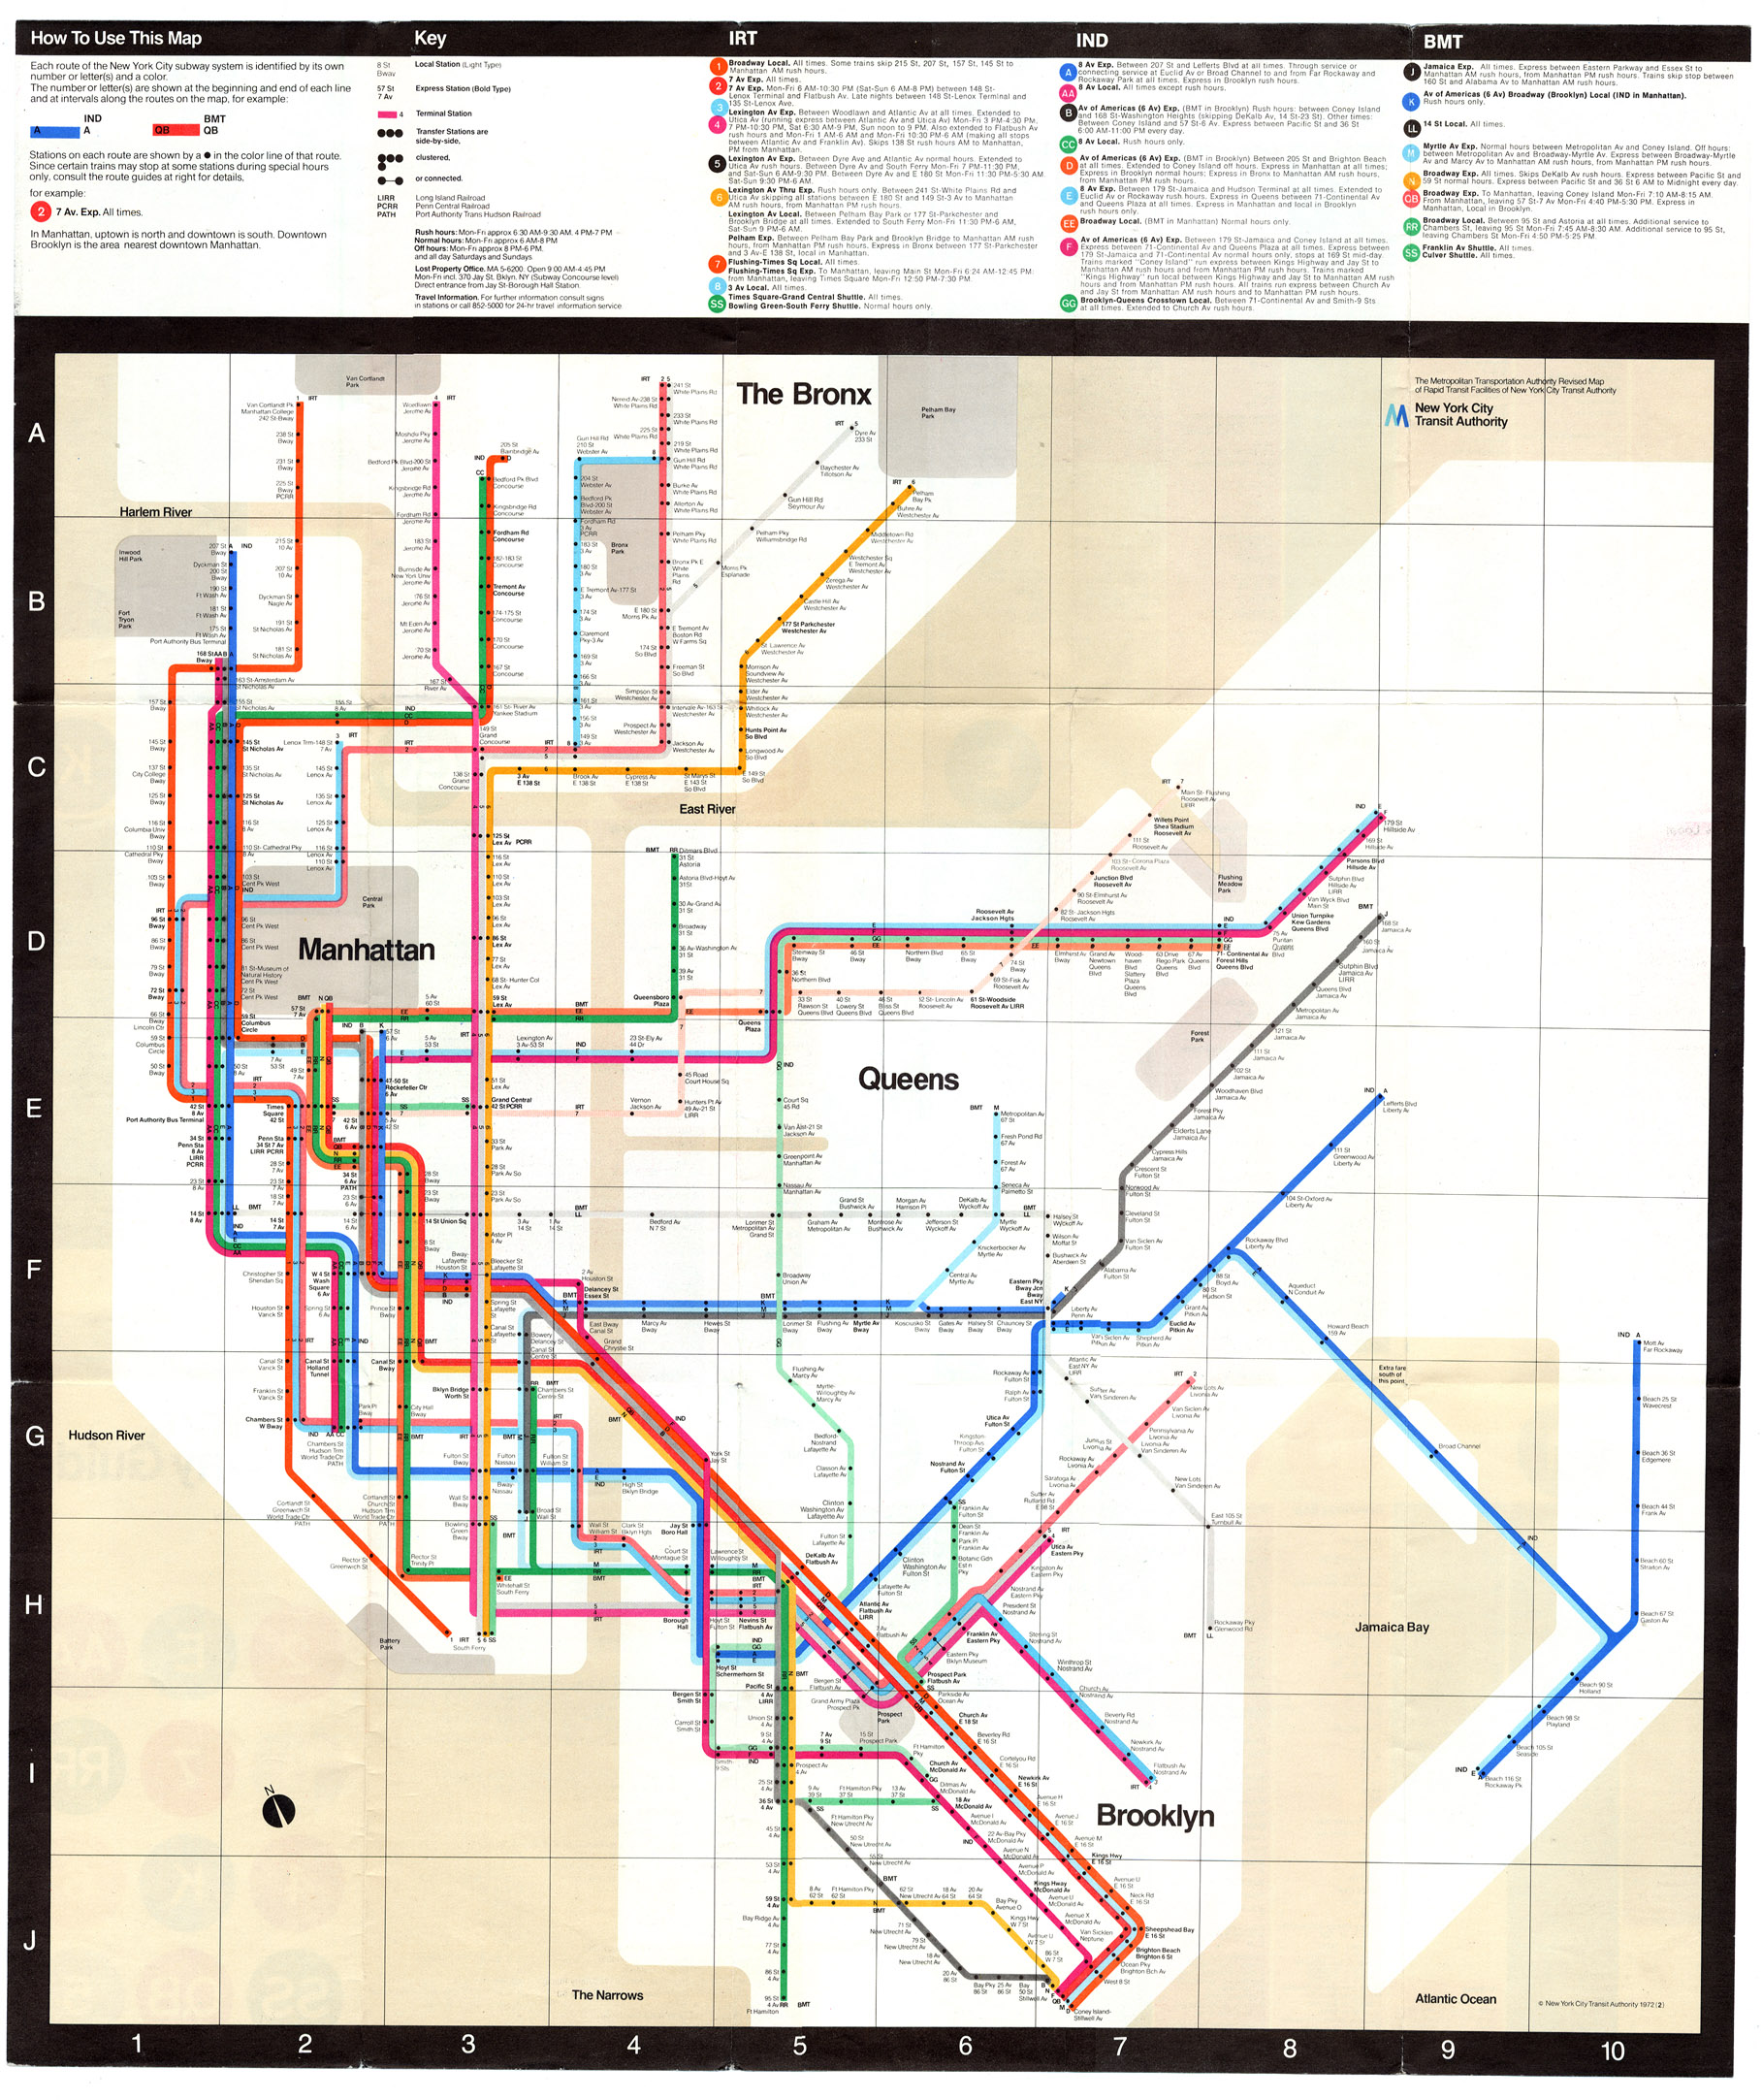 New York And Subway Map.Designing The New York City Subway Map Urban Omnibus